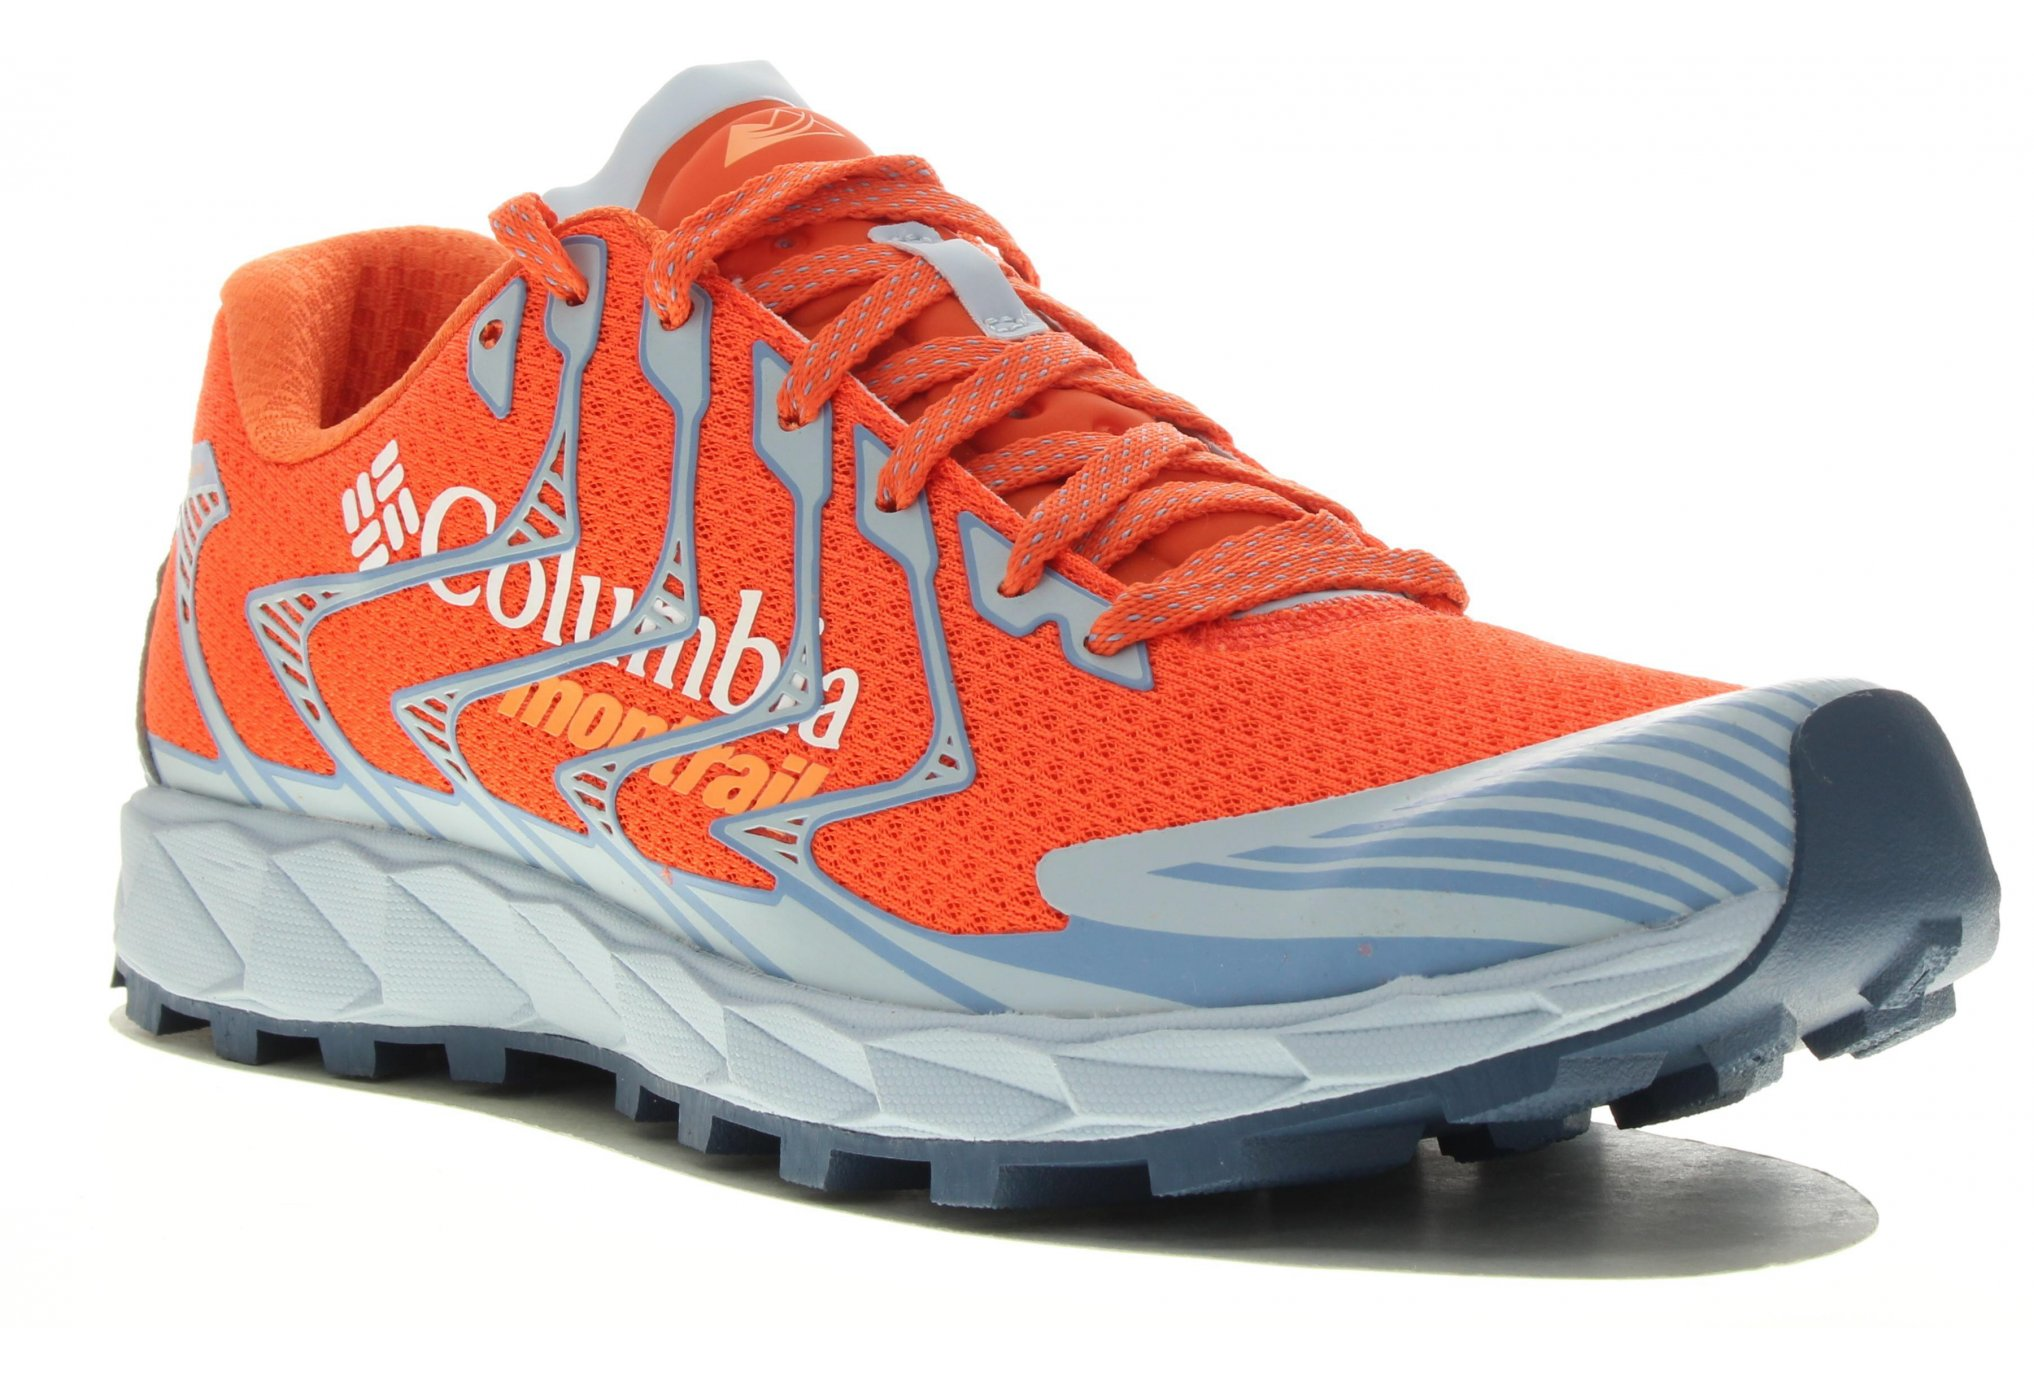 Columbia Montrail Rogue F.K.T. II W Chaussures running femme